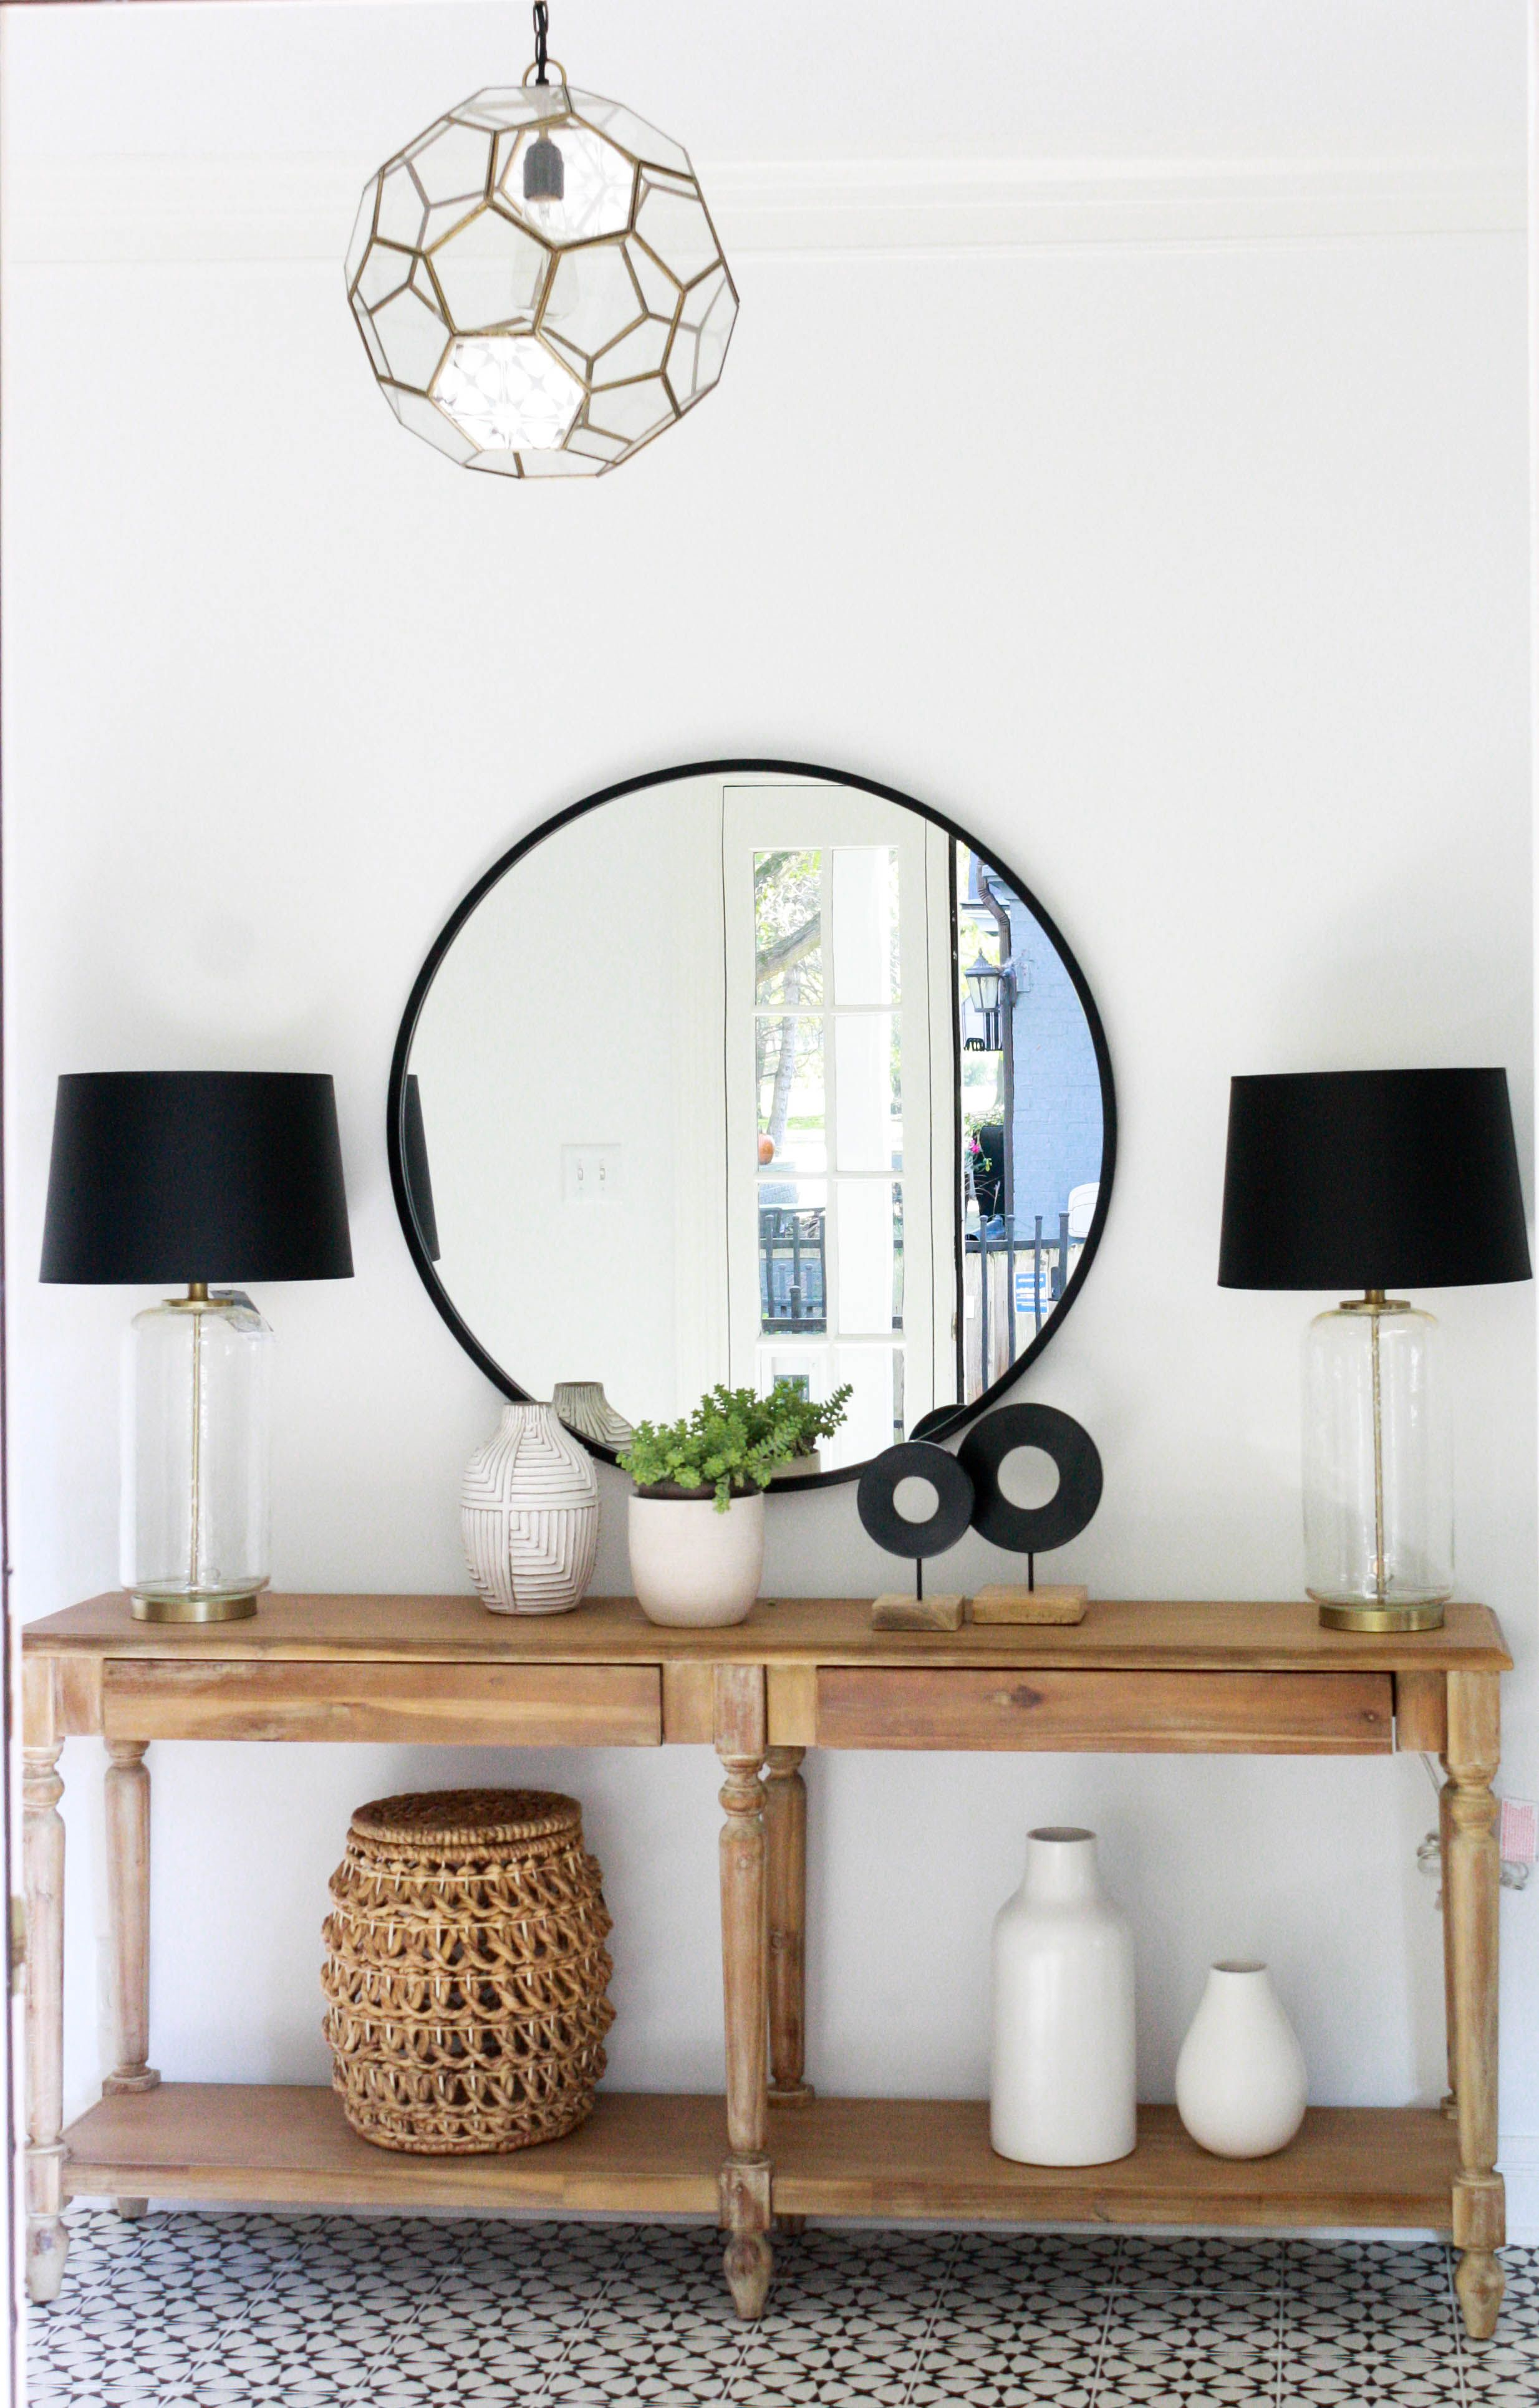 Large Round Mirror Over The Wood Console Table Mosaic Floor Tile Matching Lamps On The Console Table House Seven Desi Foyer Decorating Mirror Decor Decor